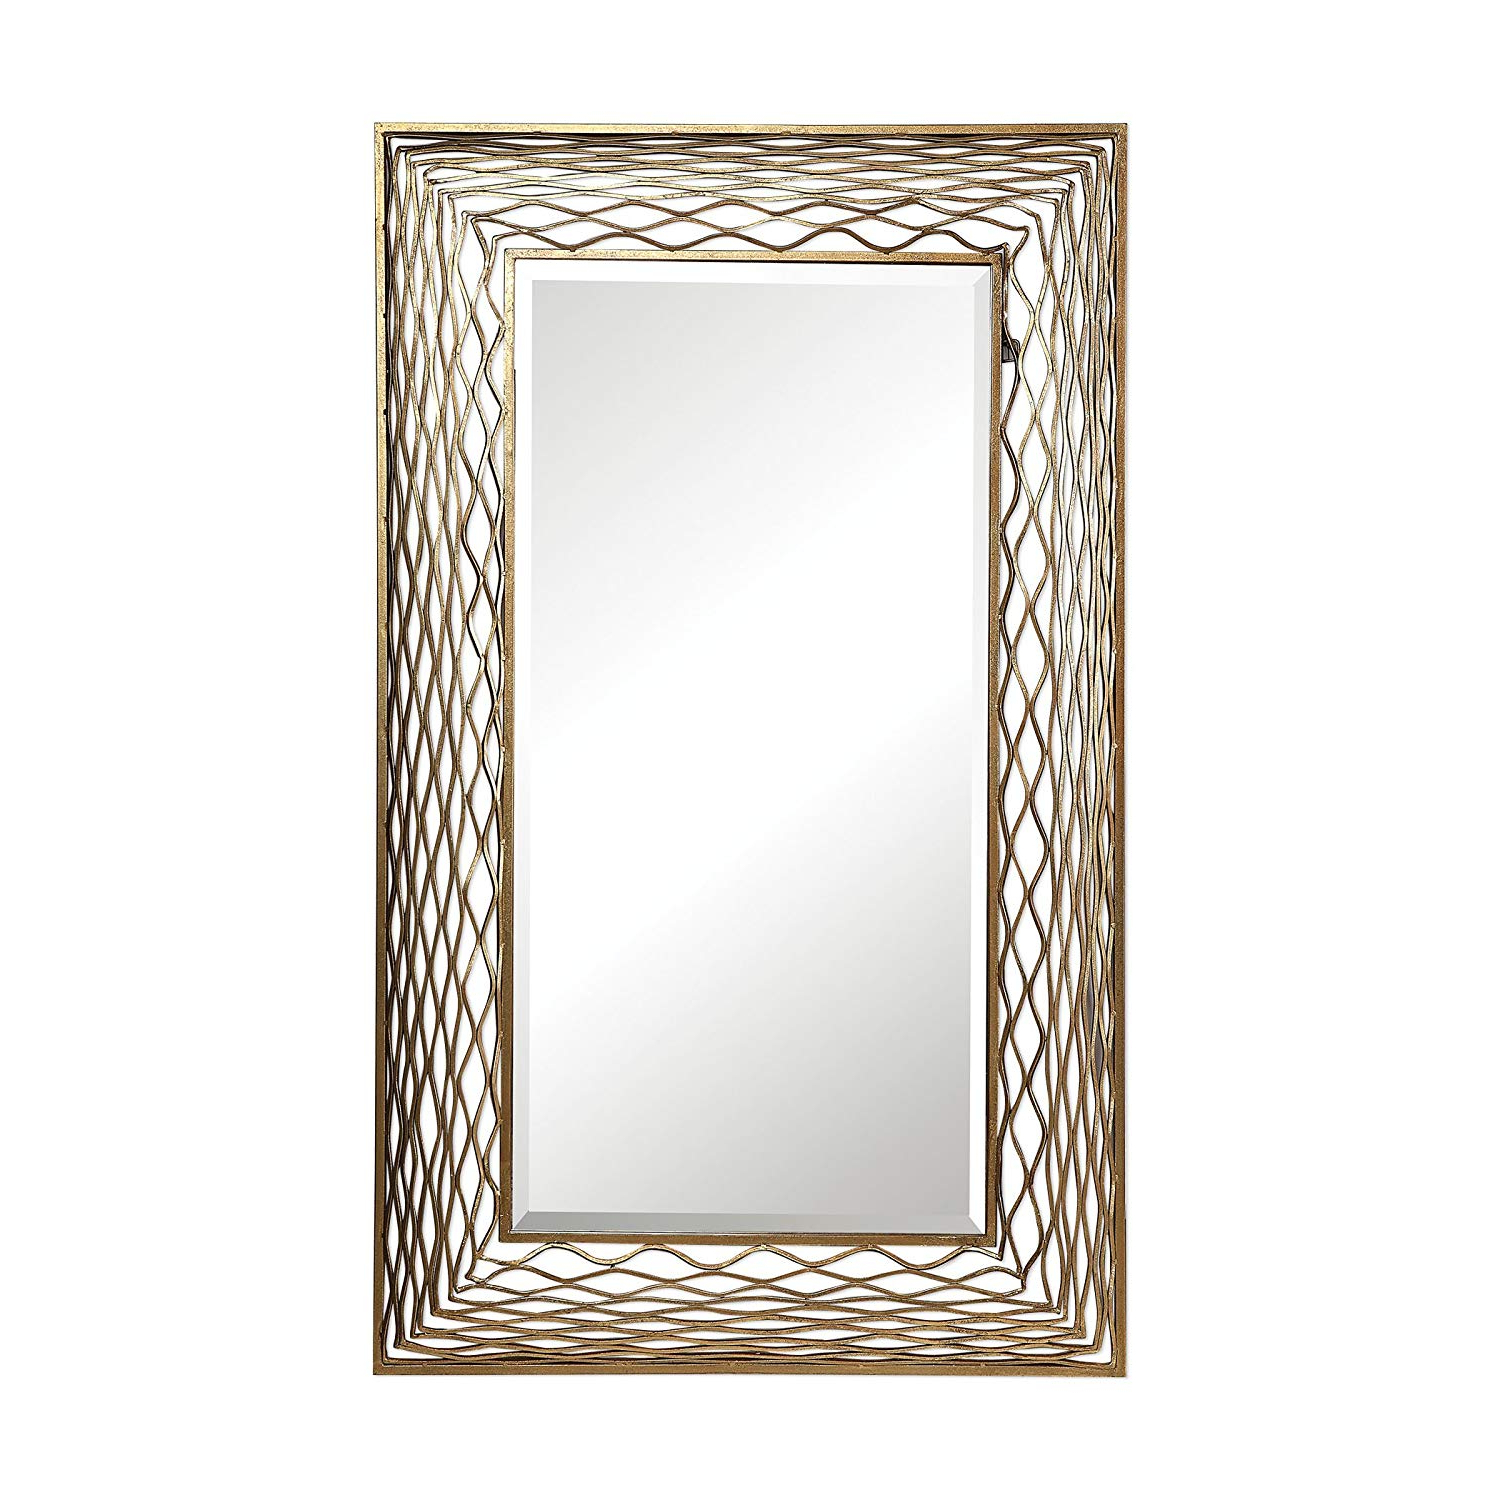 Most Current Full Length Wavy Wall Mirrors For Amazon: My Swanky Home Oversize Wavy Gold Metal Wall (View 15 of 20)